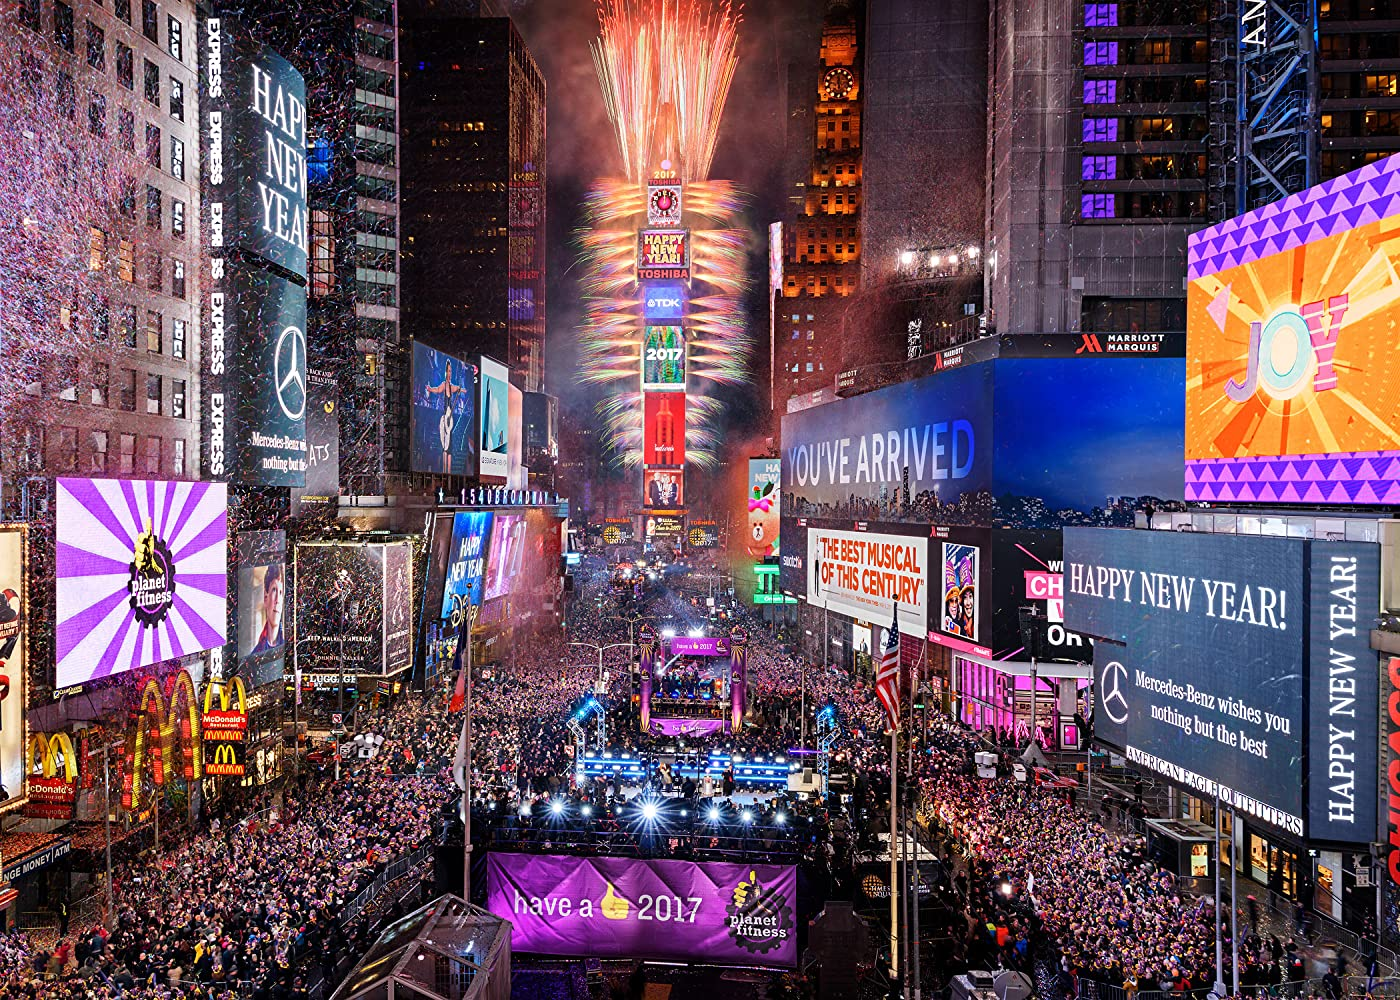 times square new years eve webcast 2017 2016